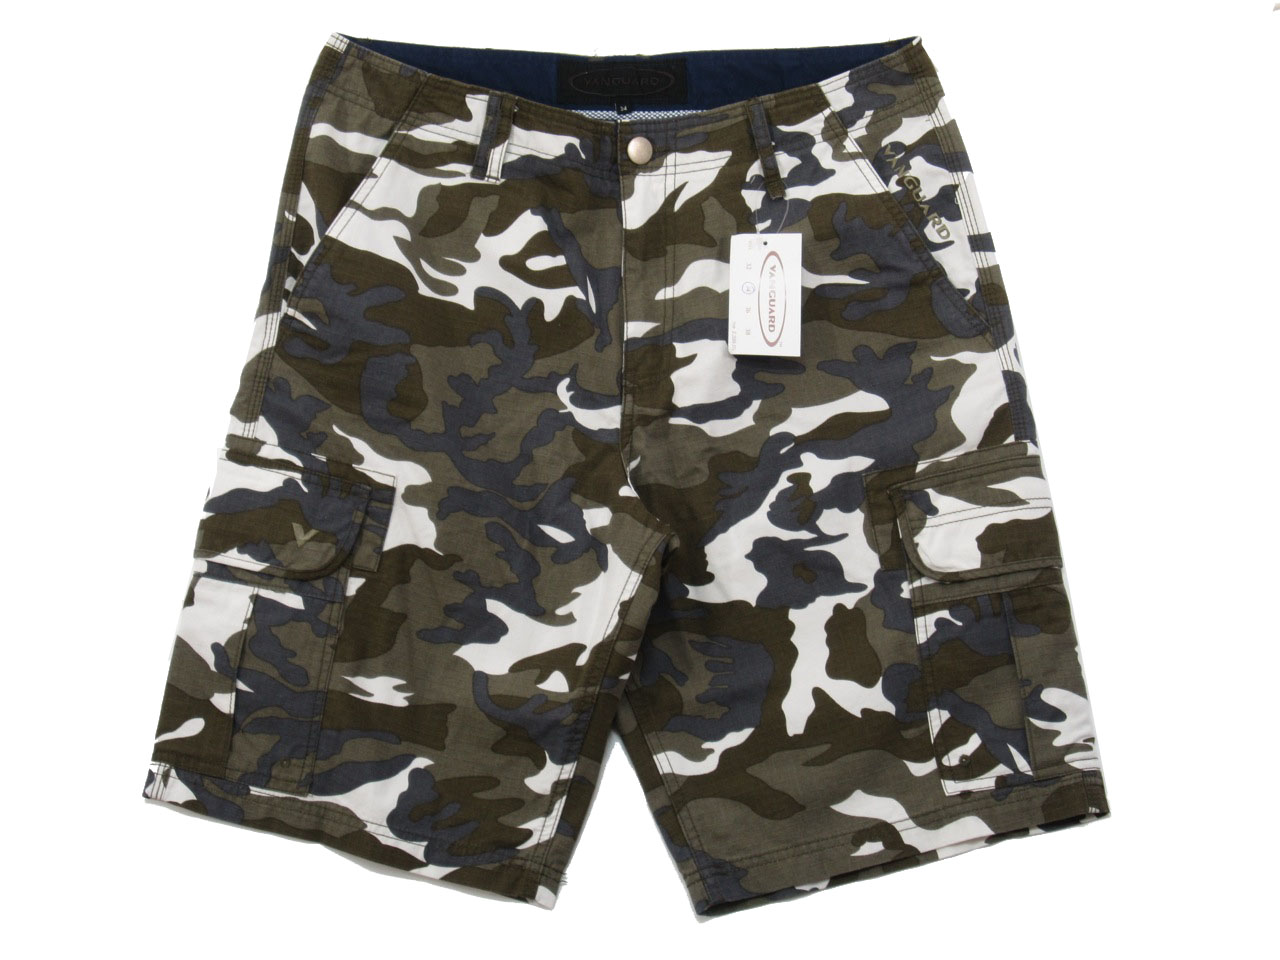 White and Brown Camo Cargo Shorts for Men - size 34